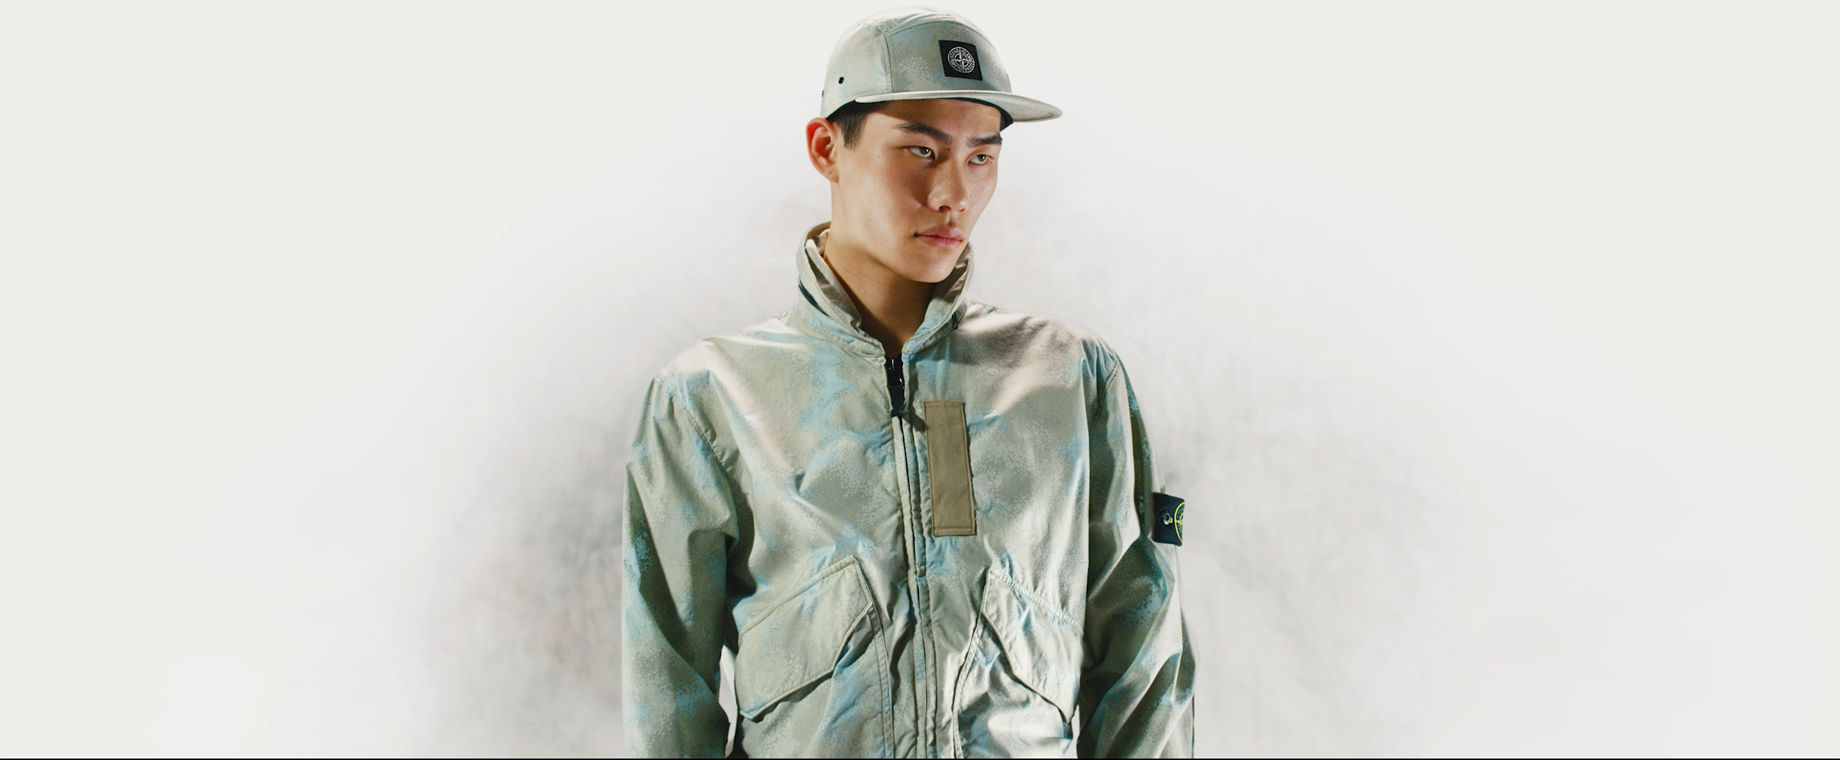 Model wearing a cap and a jacket with high collar, zipper closure and patch pockets, both in the same khaki and light blue camouflage print.